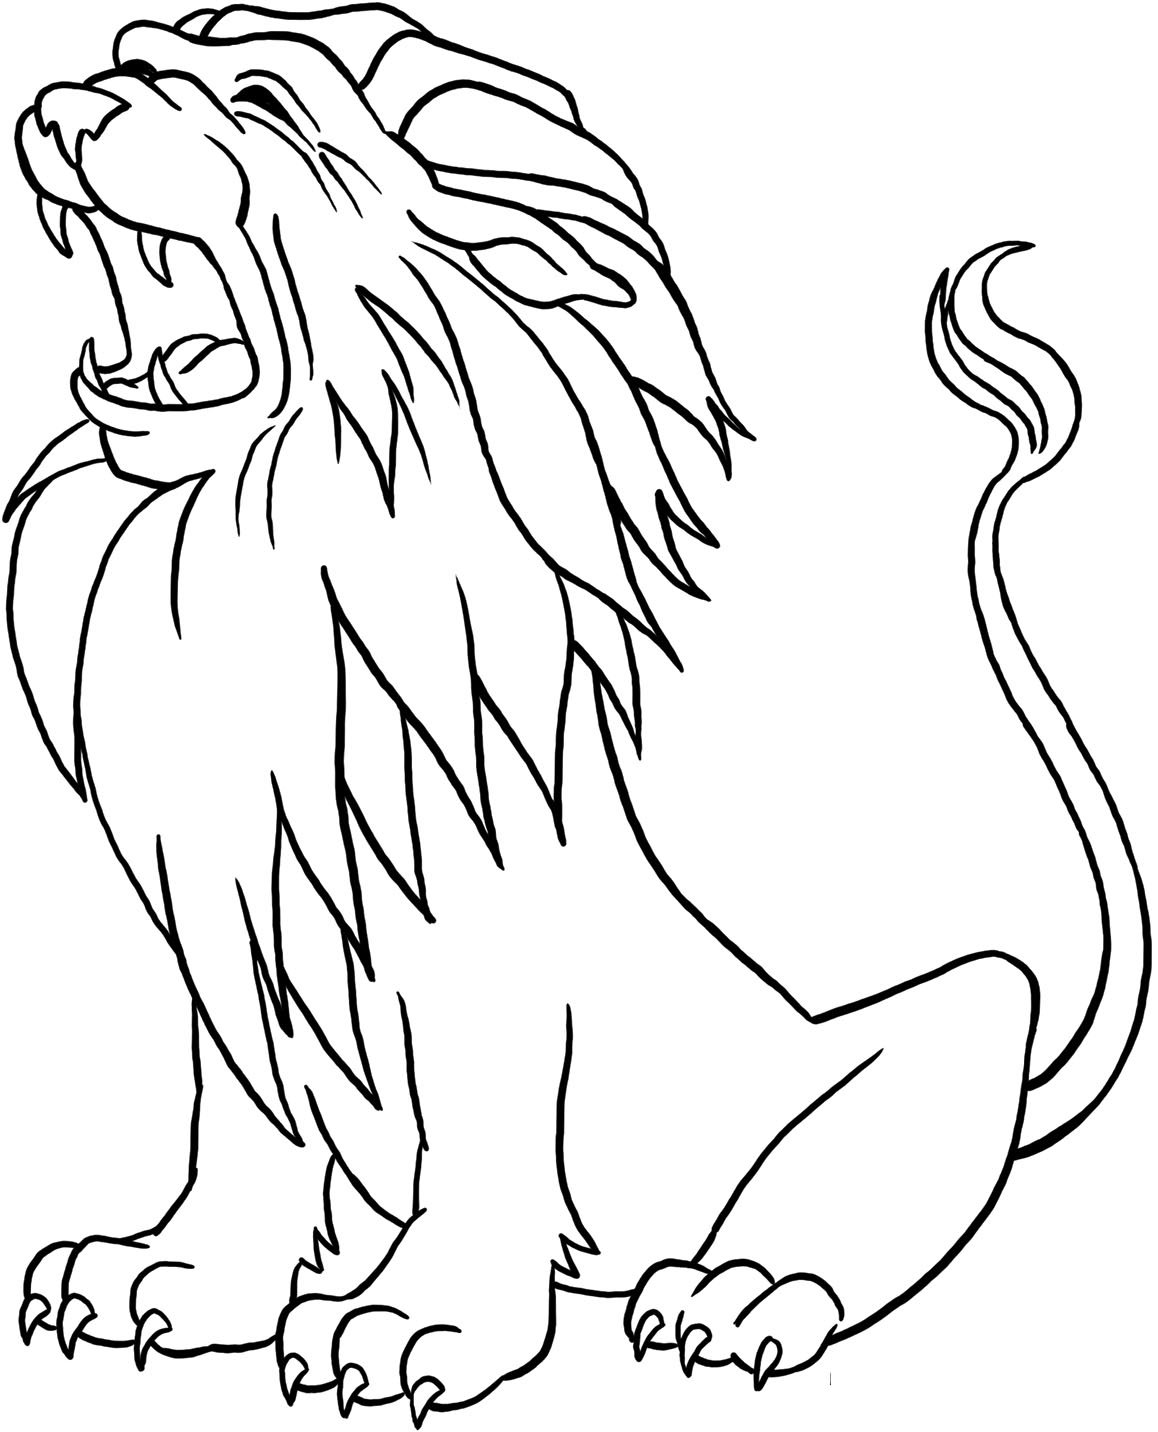 Happy Coloring Page Lion 63 3003 Inside Pages